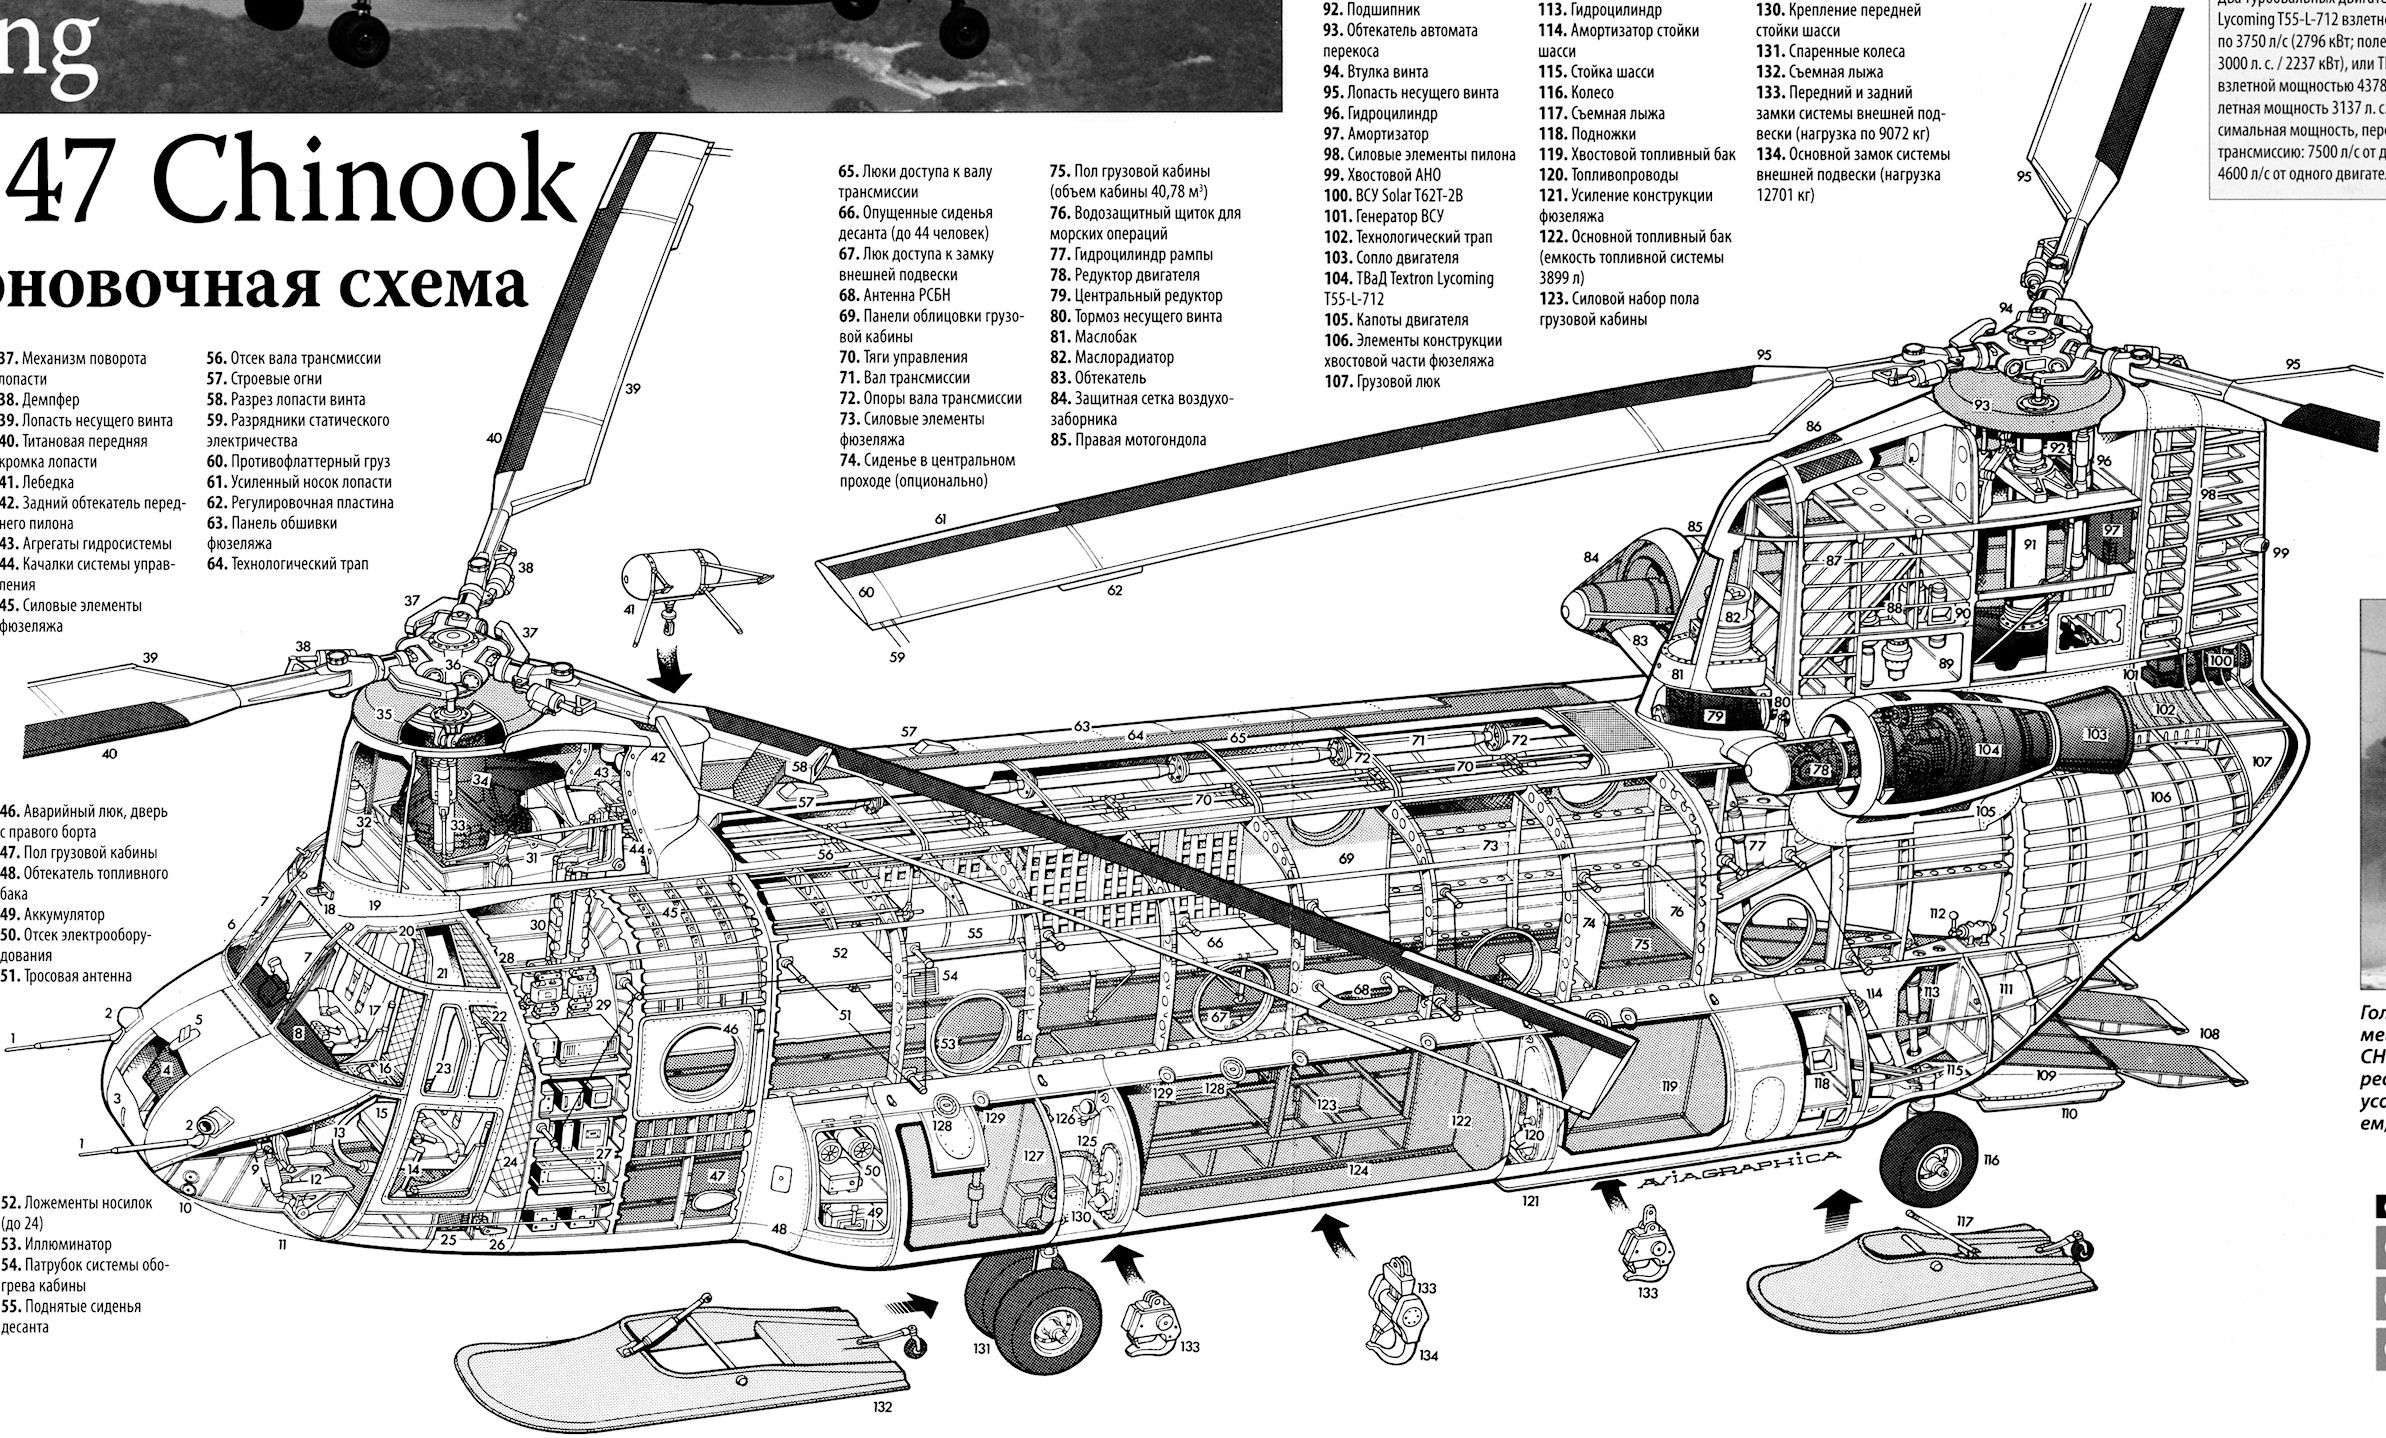 small resolution of aircarft cutaway boeing ch 47 chinook chinook helicopters attack helicopter military helicopter